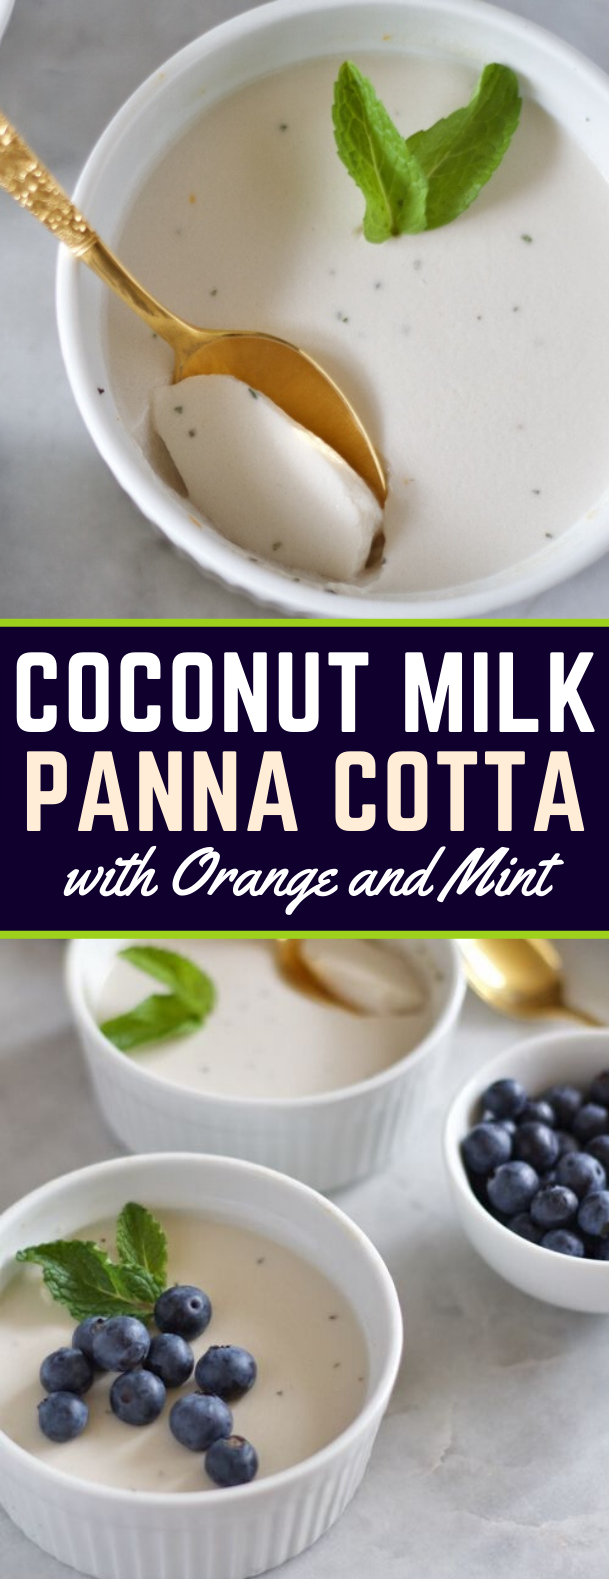 Coconut Milk Panna Cotta with Orange and Mint #desserts #sweets